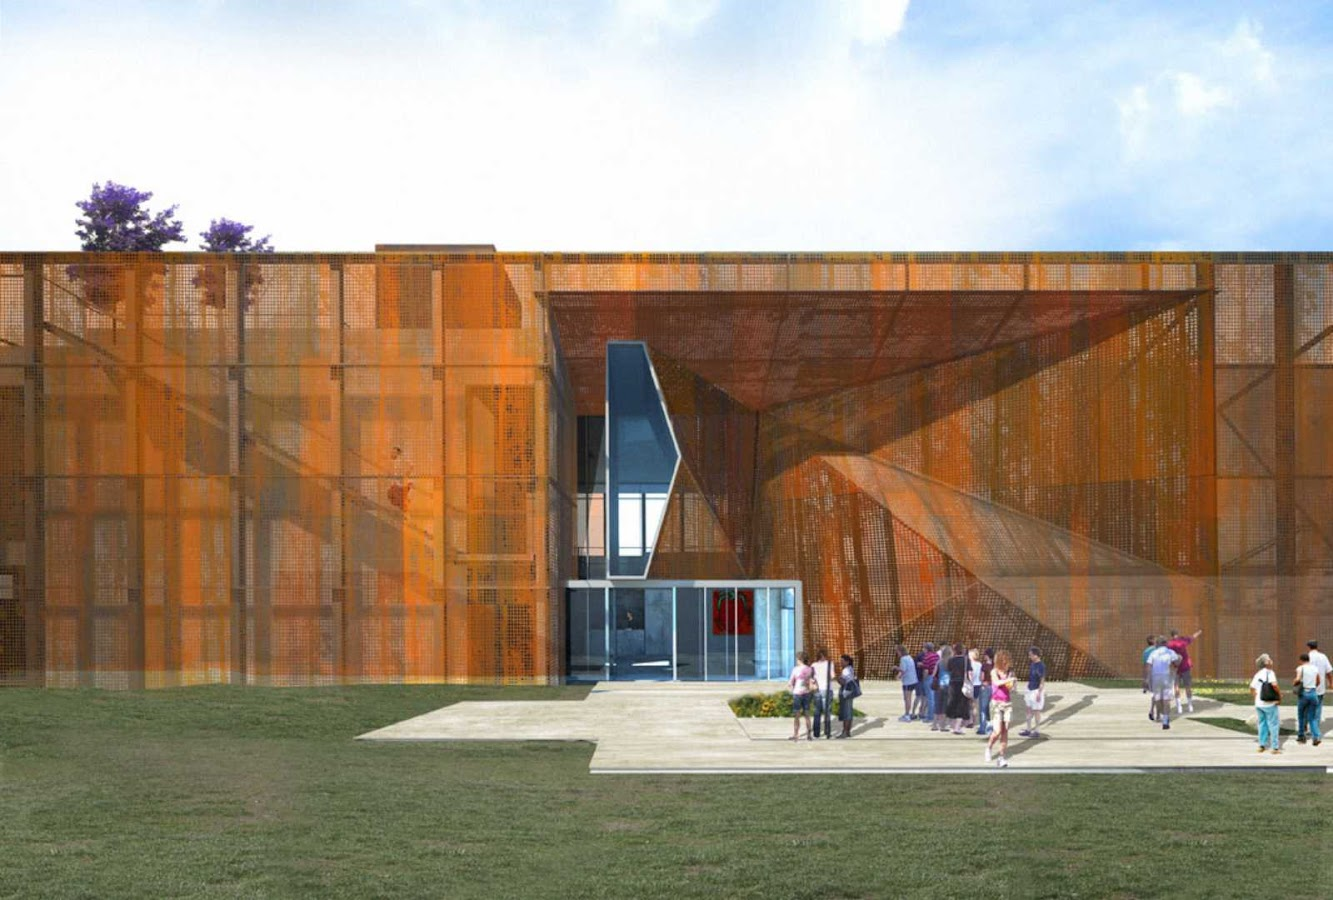 Saint Louis, Missouri, Stati Uniti d'America: Aronson Fine Arts Center At Laumeier Sculpture Park by Brooks + Scarpa Architects